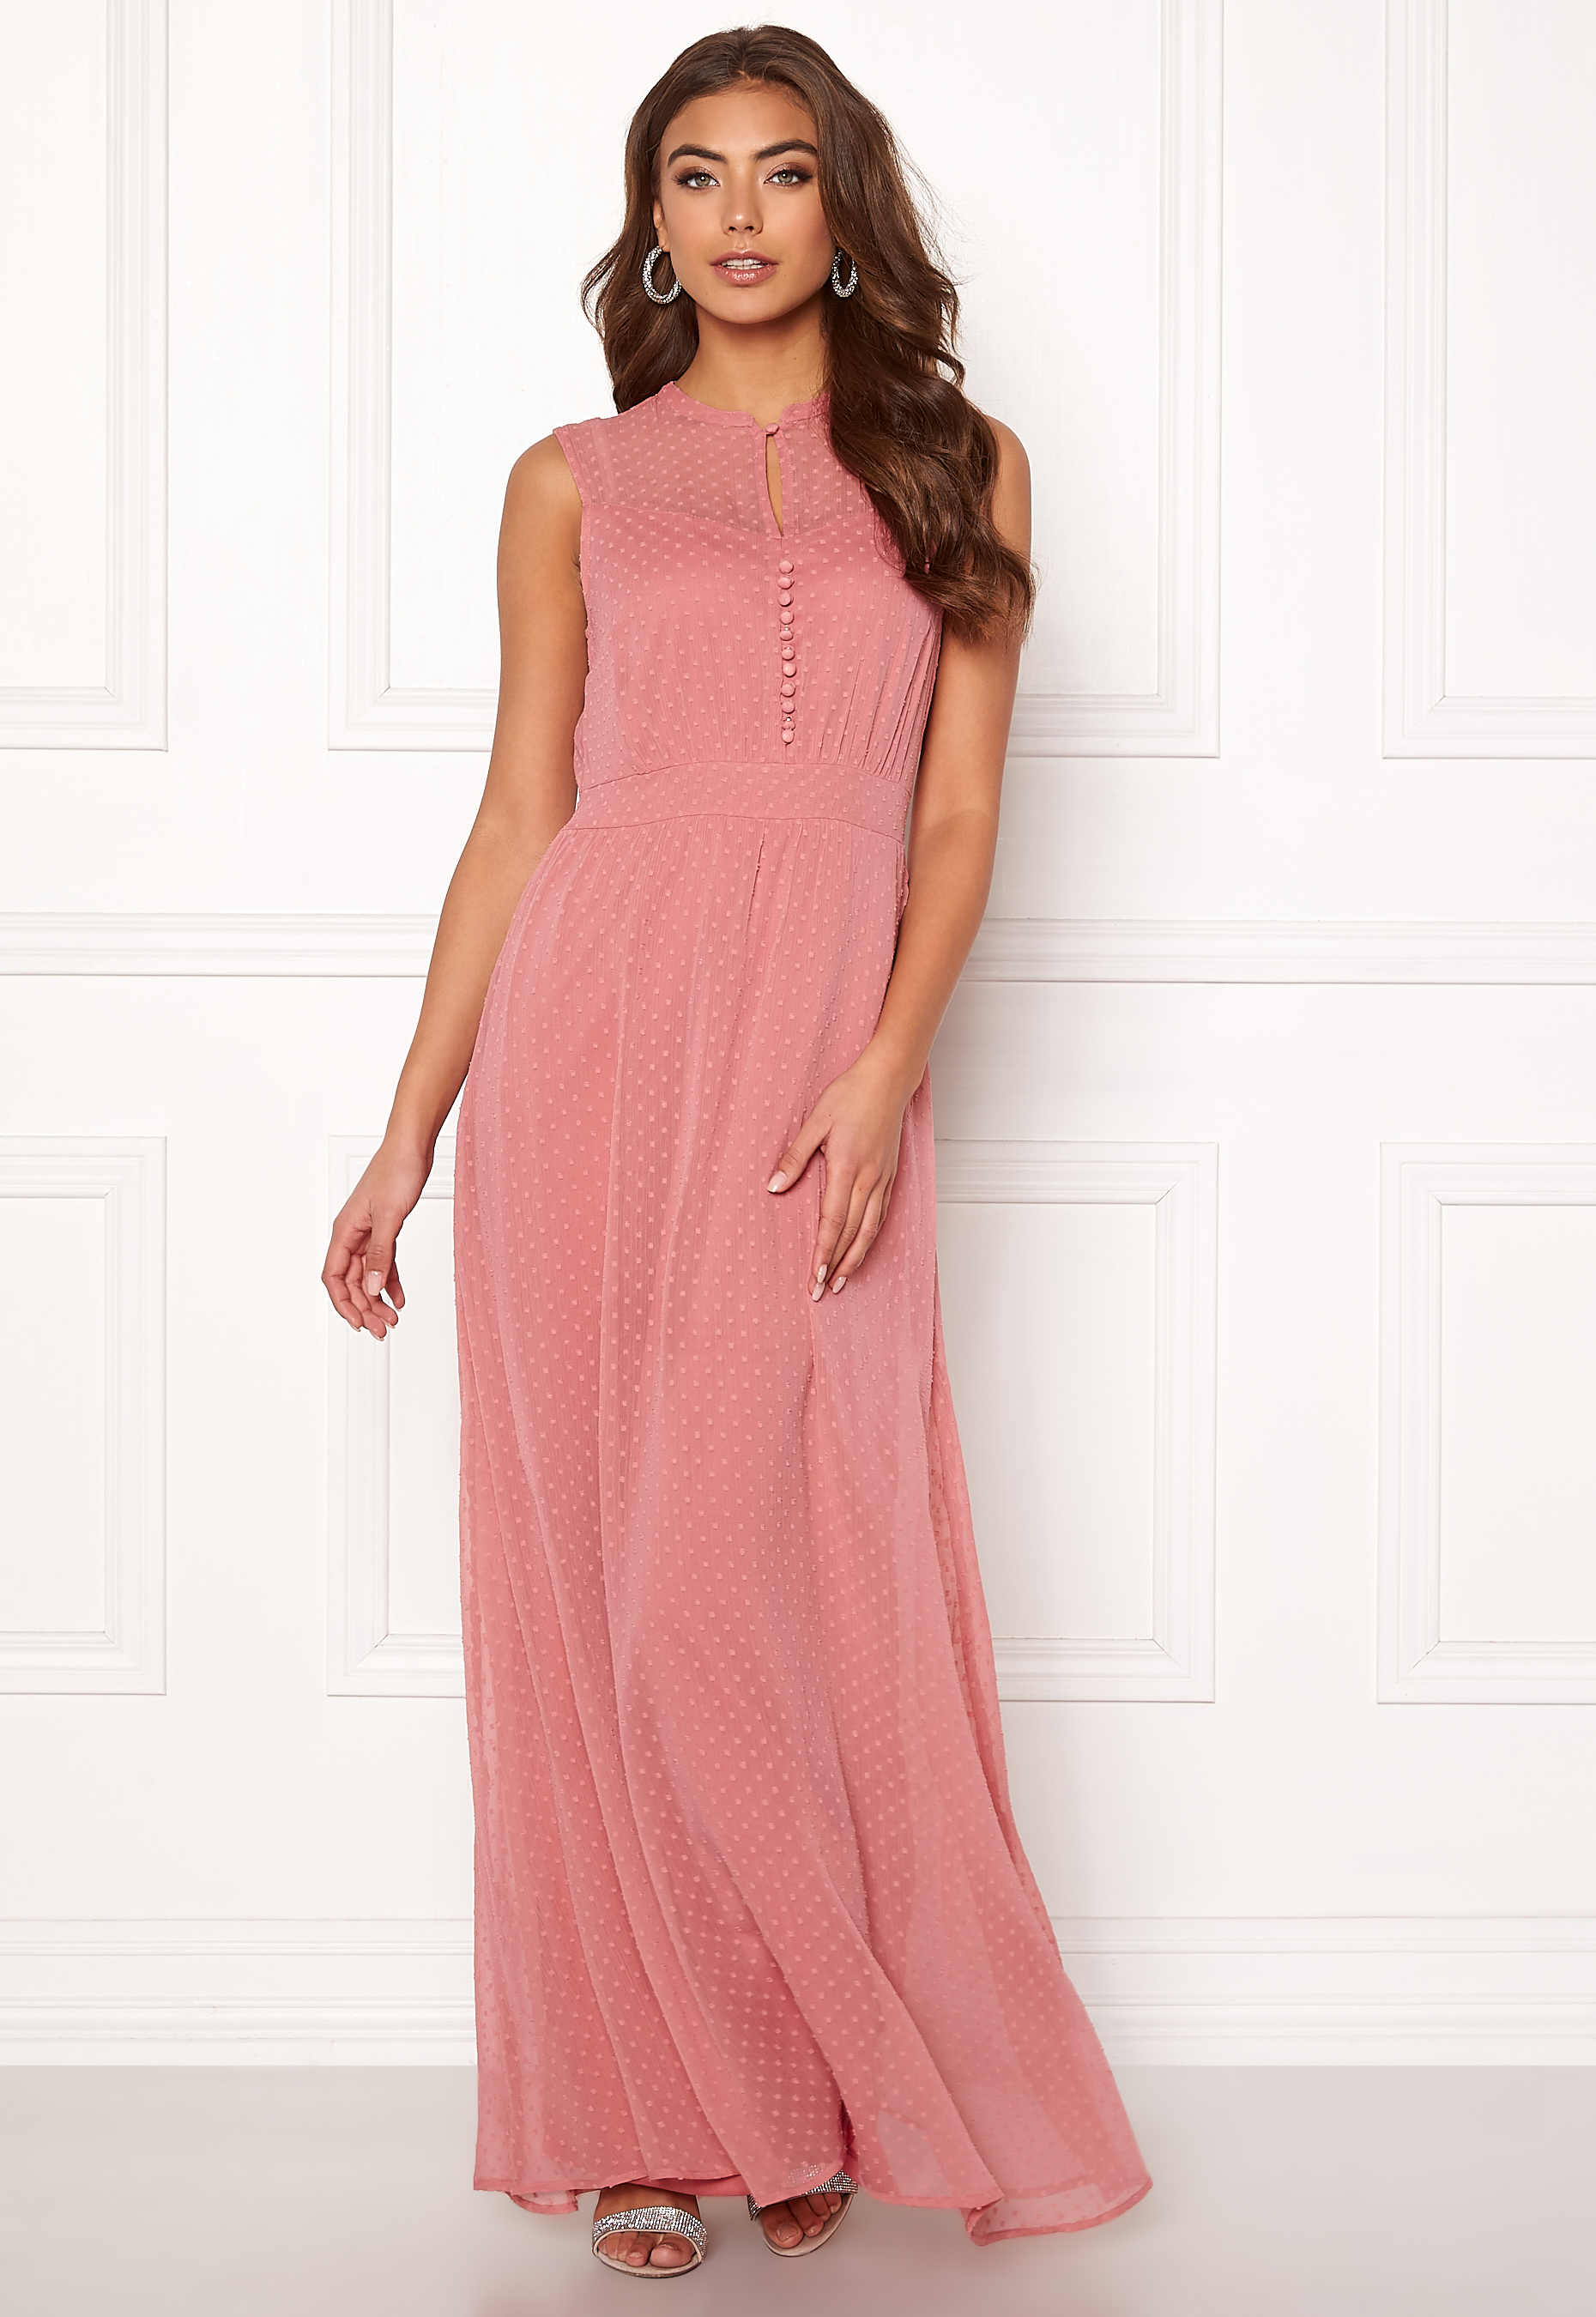 58102bc7 Y.A.S Sienna S/L Dress Dusty Rose - Bubbleroom